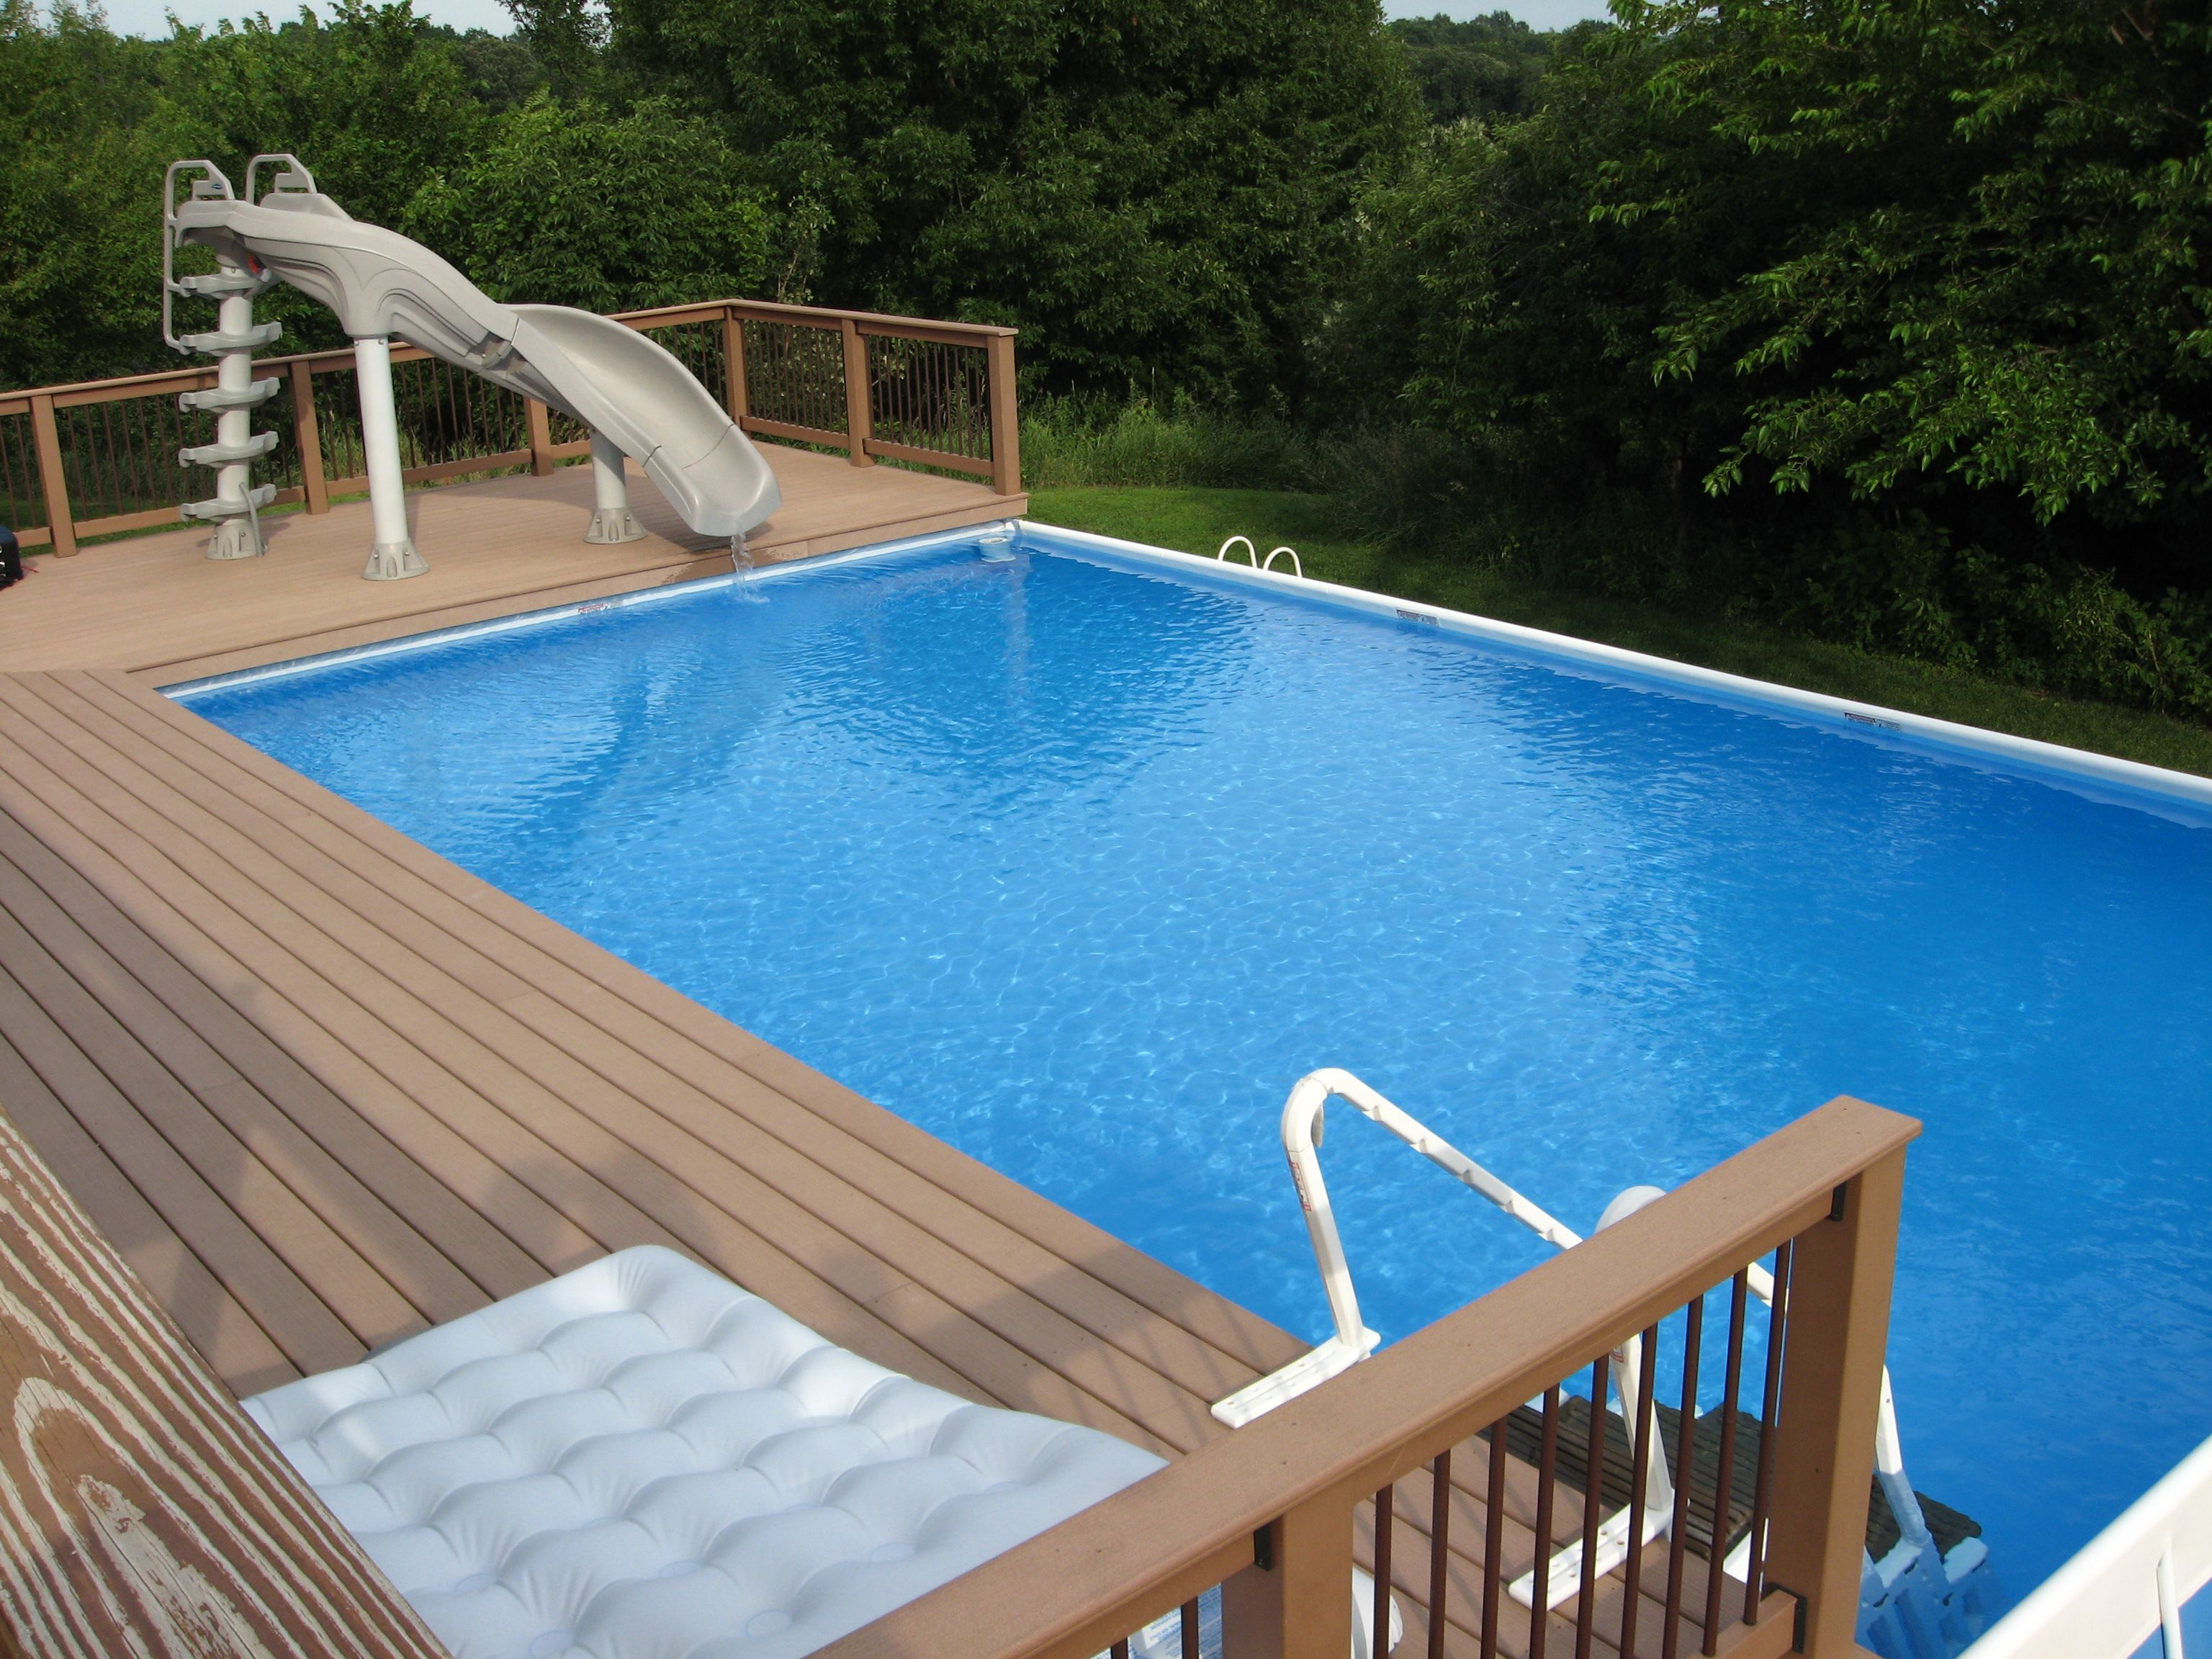 Above Ground Pool Decks Idea For Your Backyard Decor